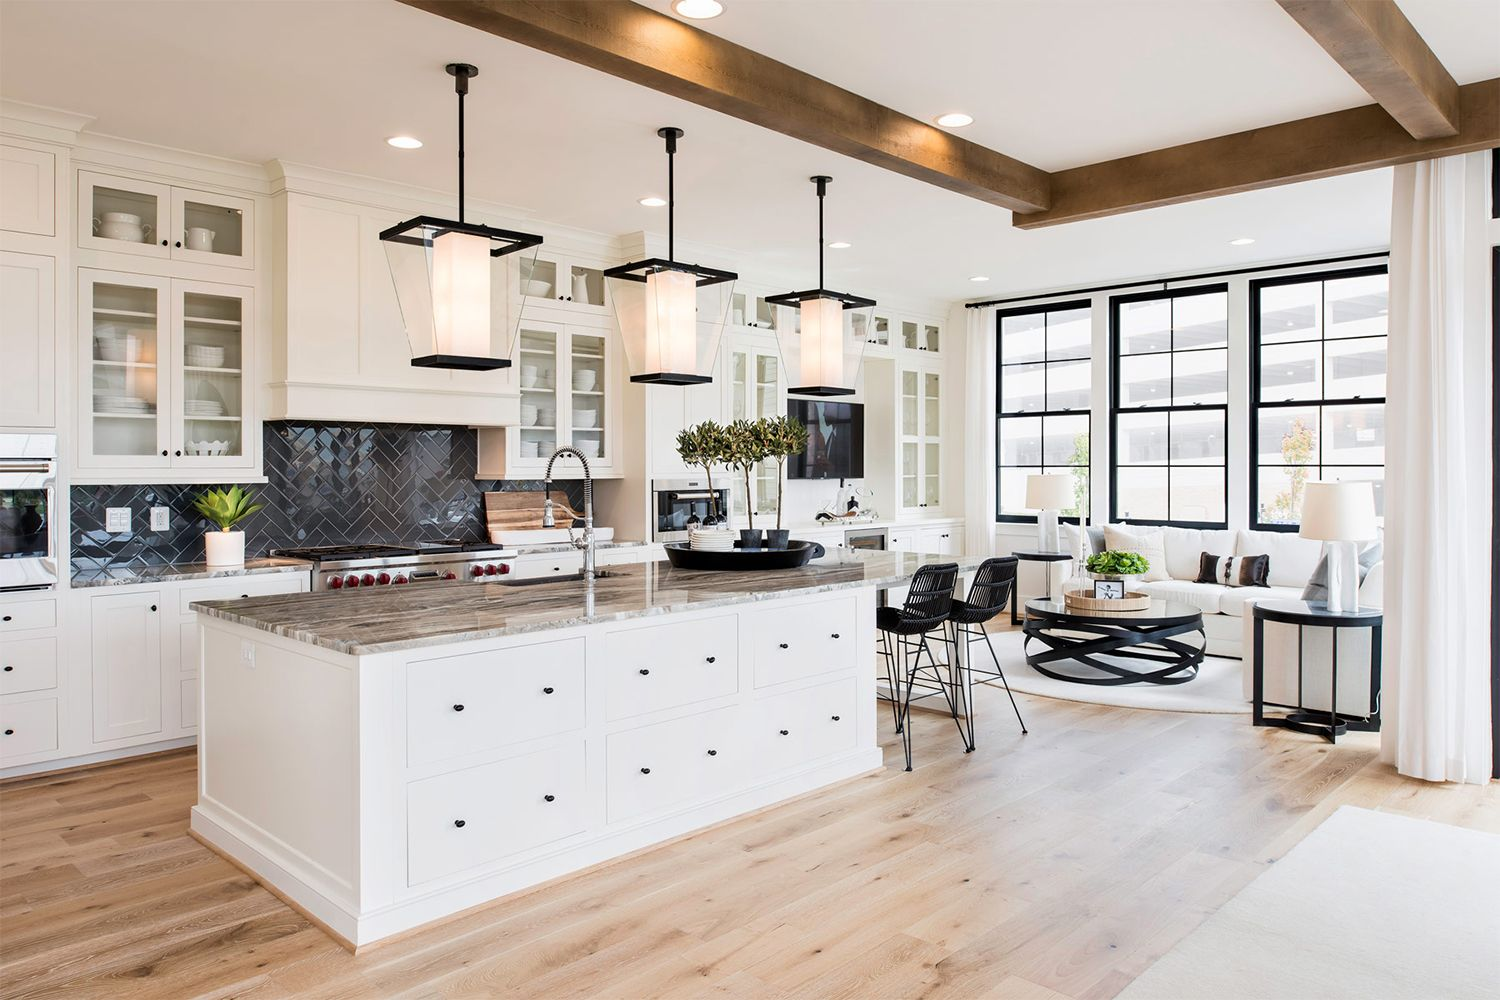 1LX Kitchen oneloudoun chef kitchen New homes for